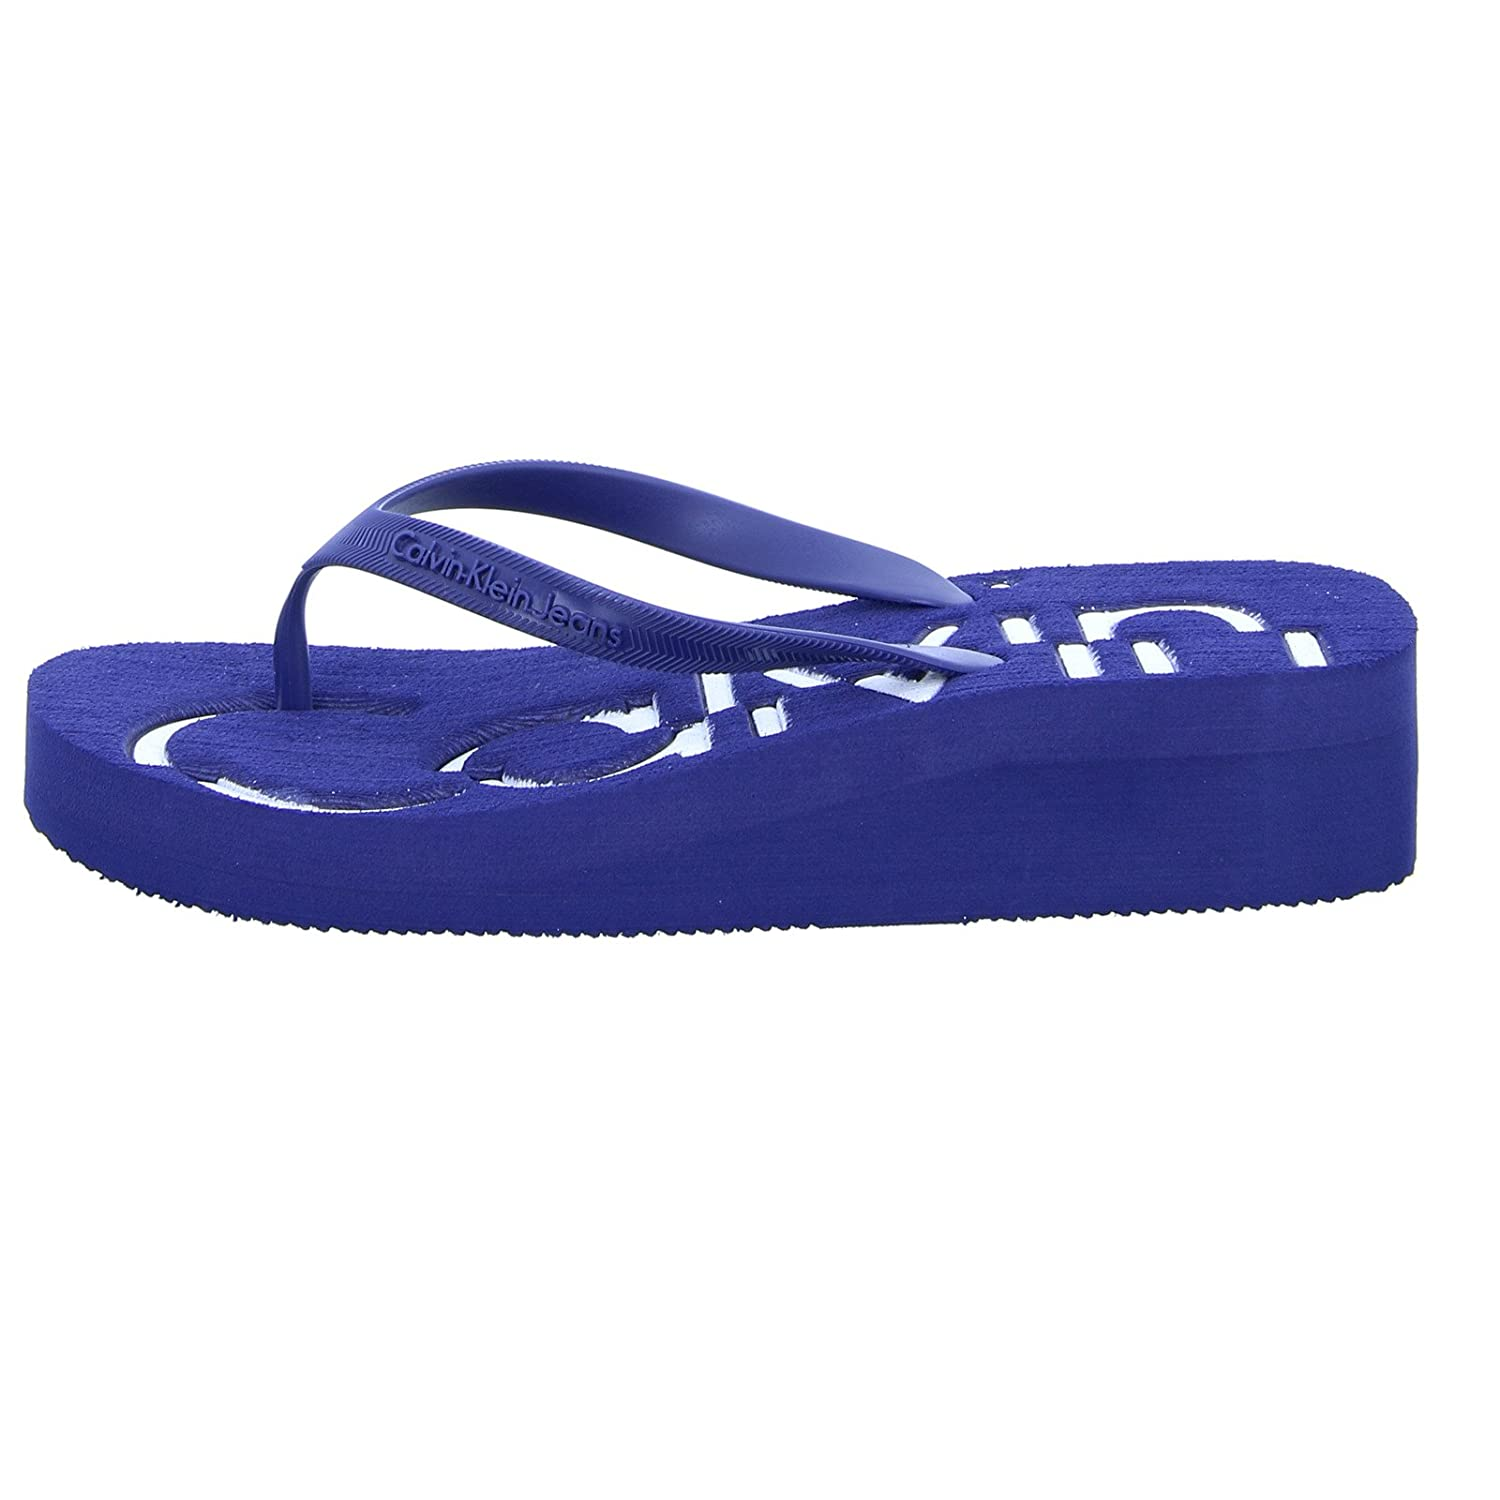 f5cd87038 Calvin Klein Women s Tamber Jelly Toe Post Wedge Flip Flop Blue White   Amazon.co.uk  Shoes   Bags